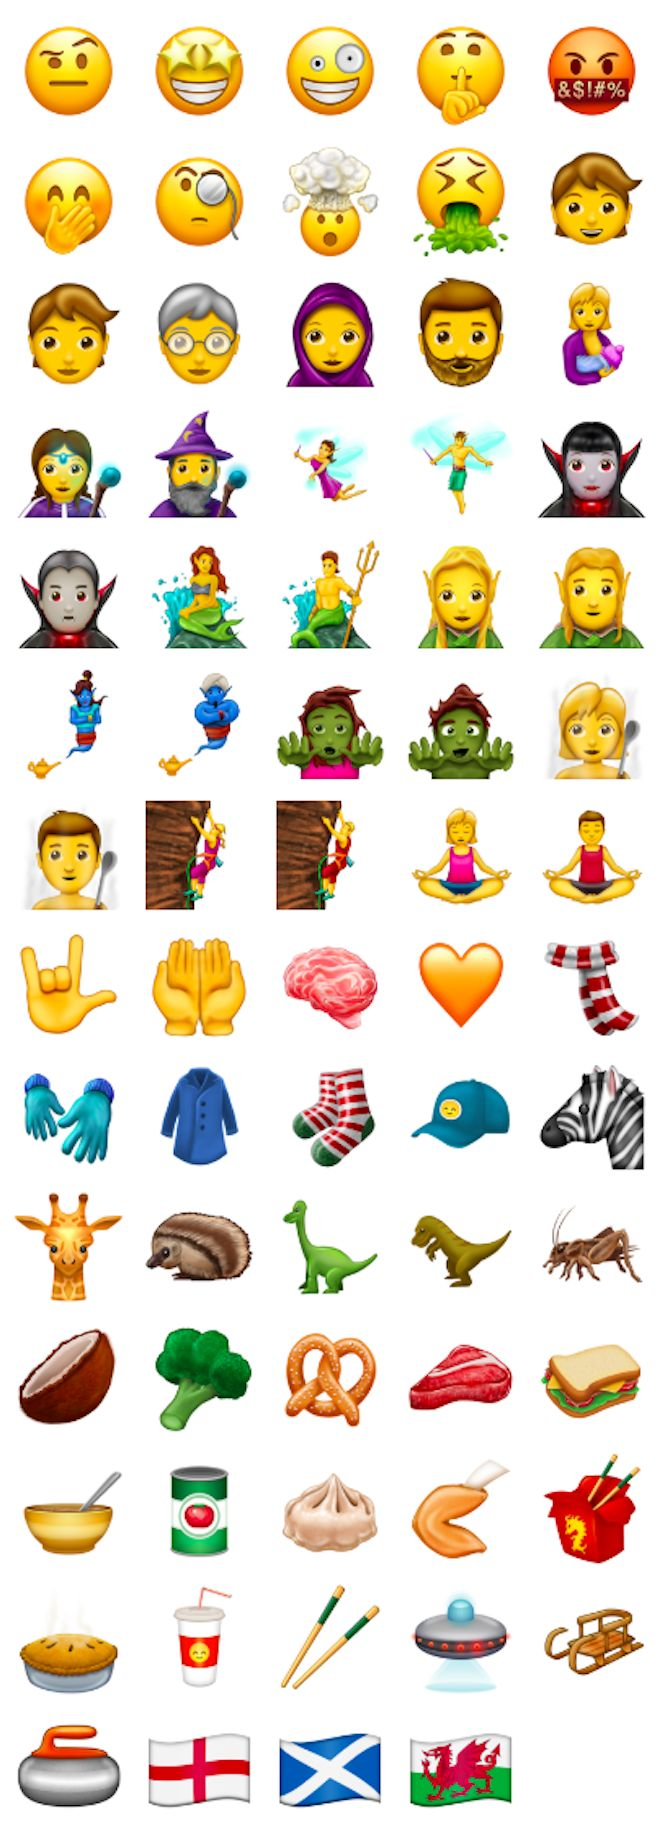 Cuckoo for coconuts? Pining for pretzels? A dumpling devotee? There's good news for you! By the end of 2017, food-obsessed iPhone users will be able to pictorially express their love for food with a bevy of new emojis. As part of Apple's Unicode 10.0 upgrade, the new line-up...